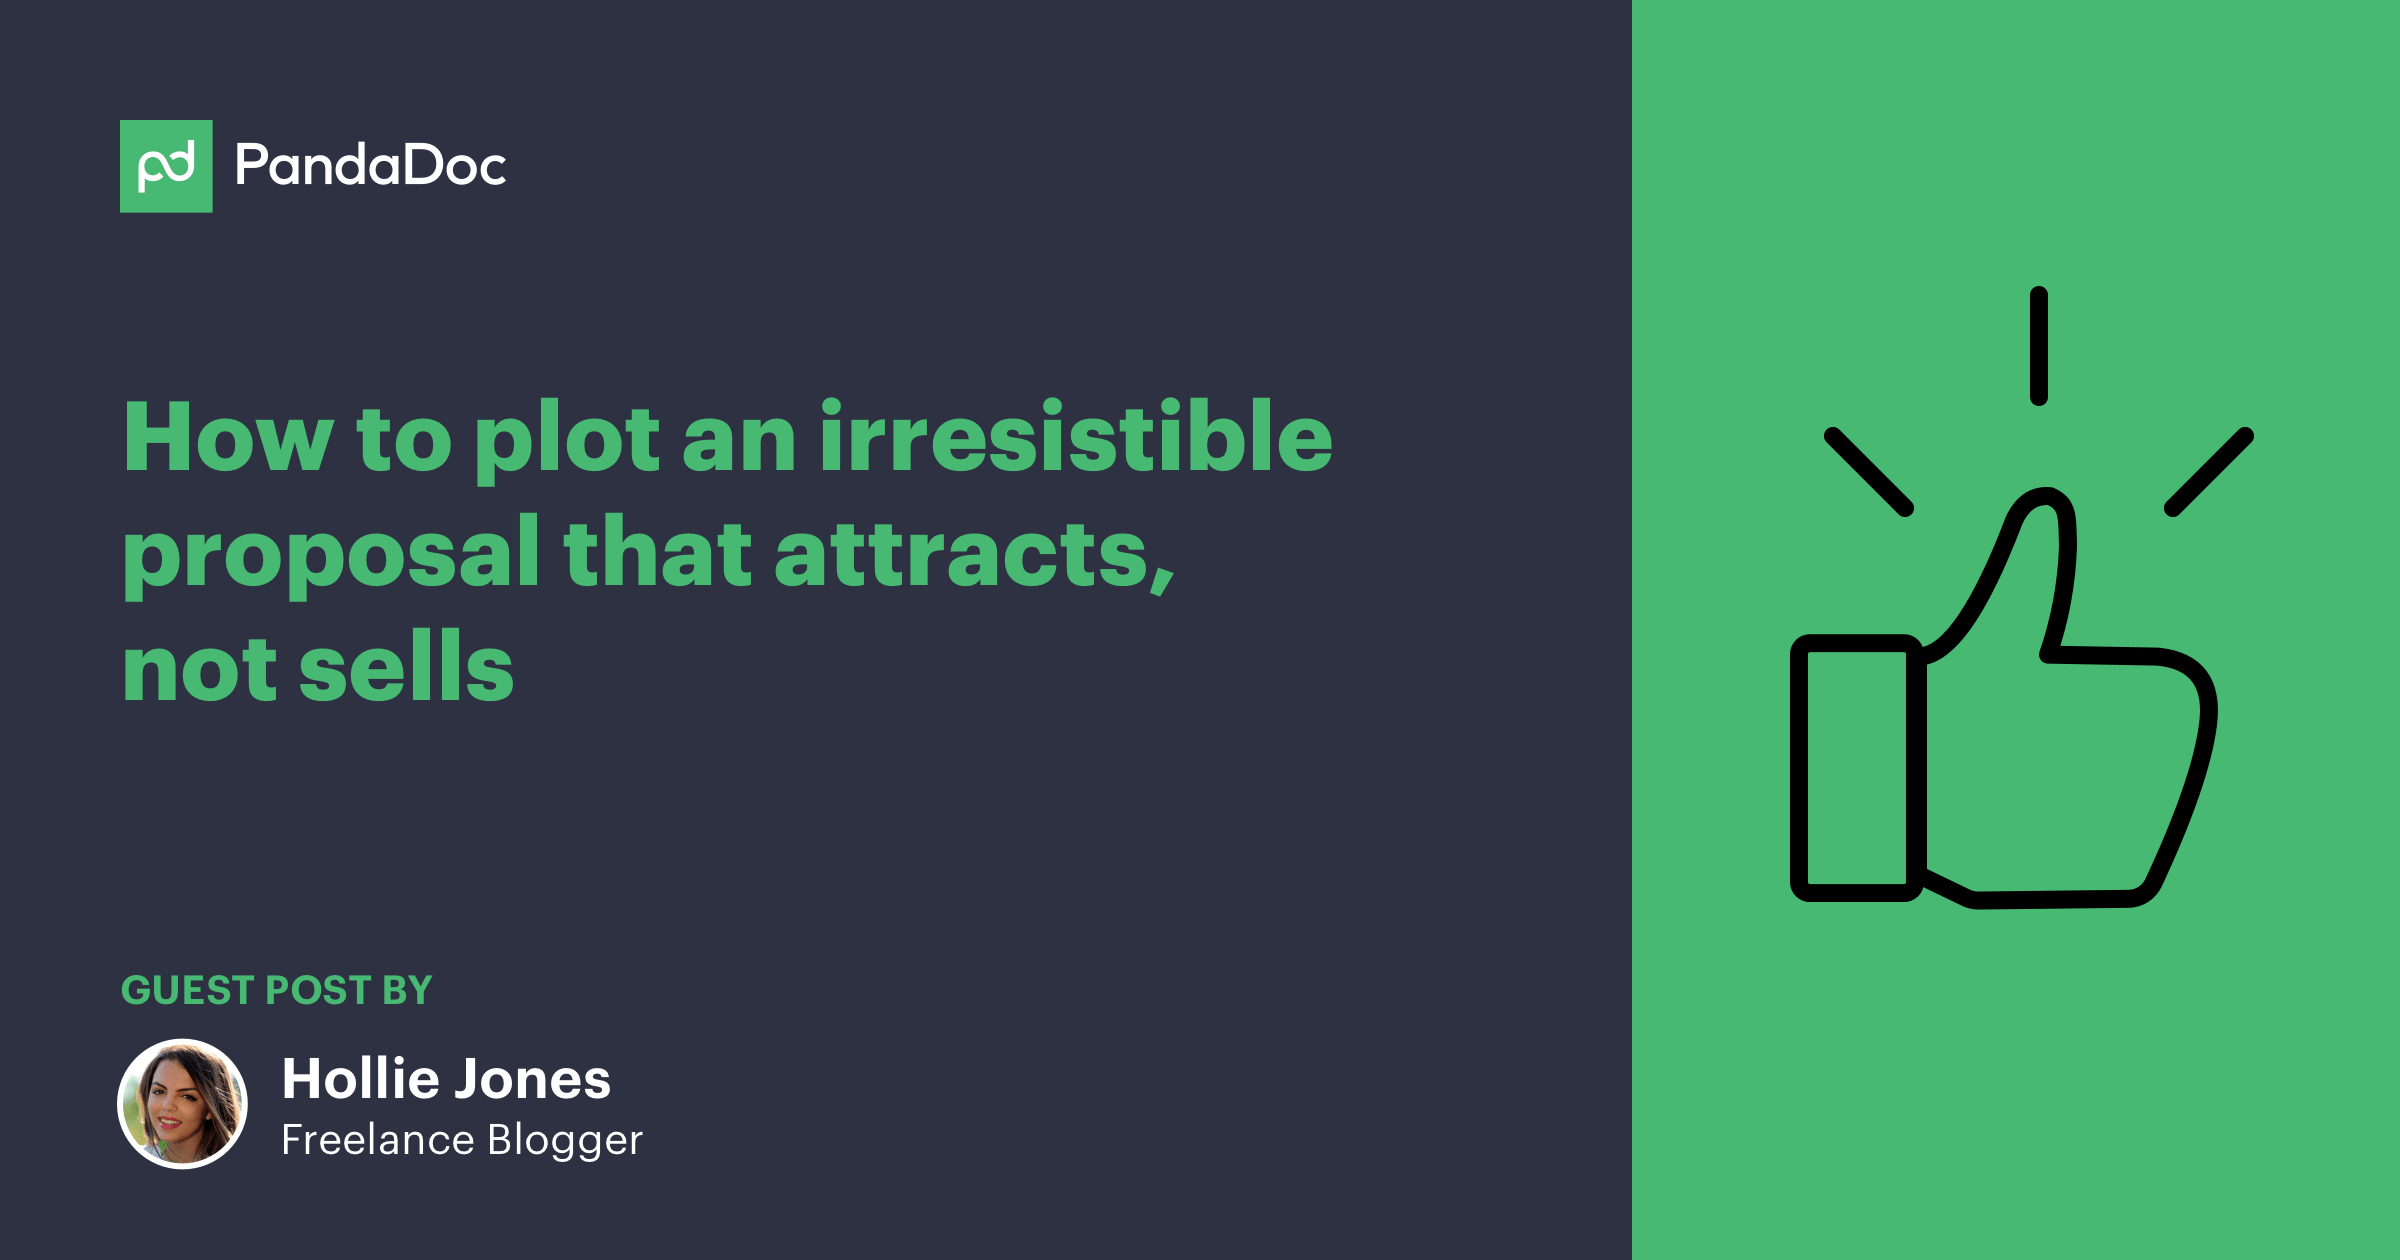 How to plot an irresistible proposal that attracts, not sells